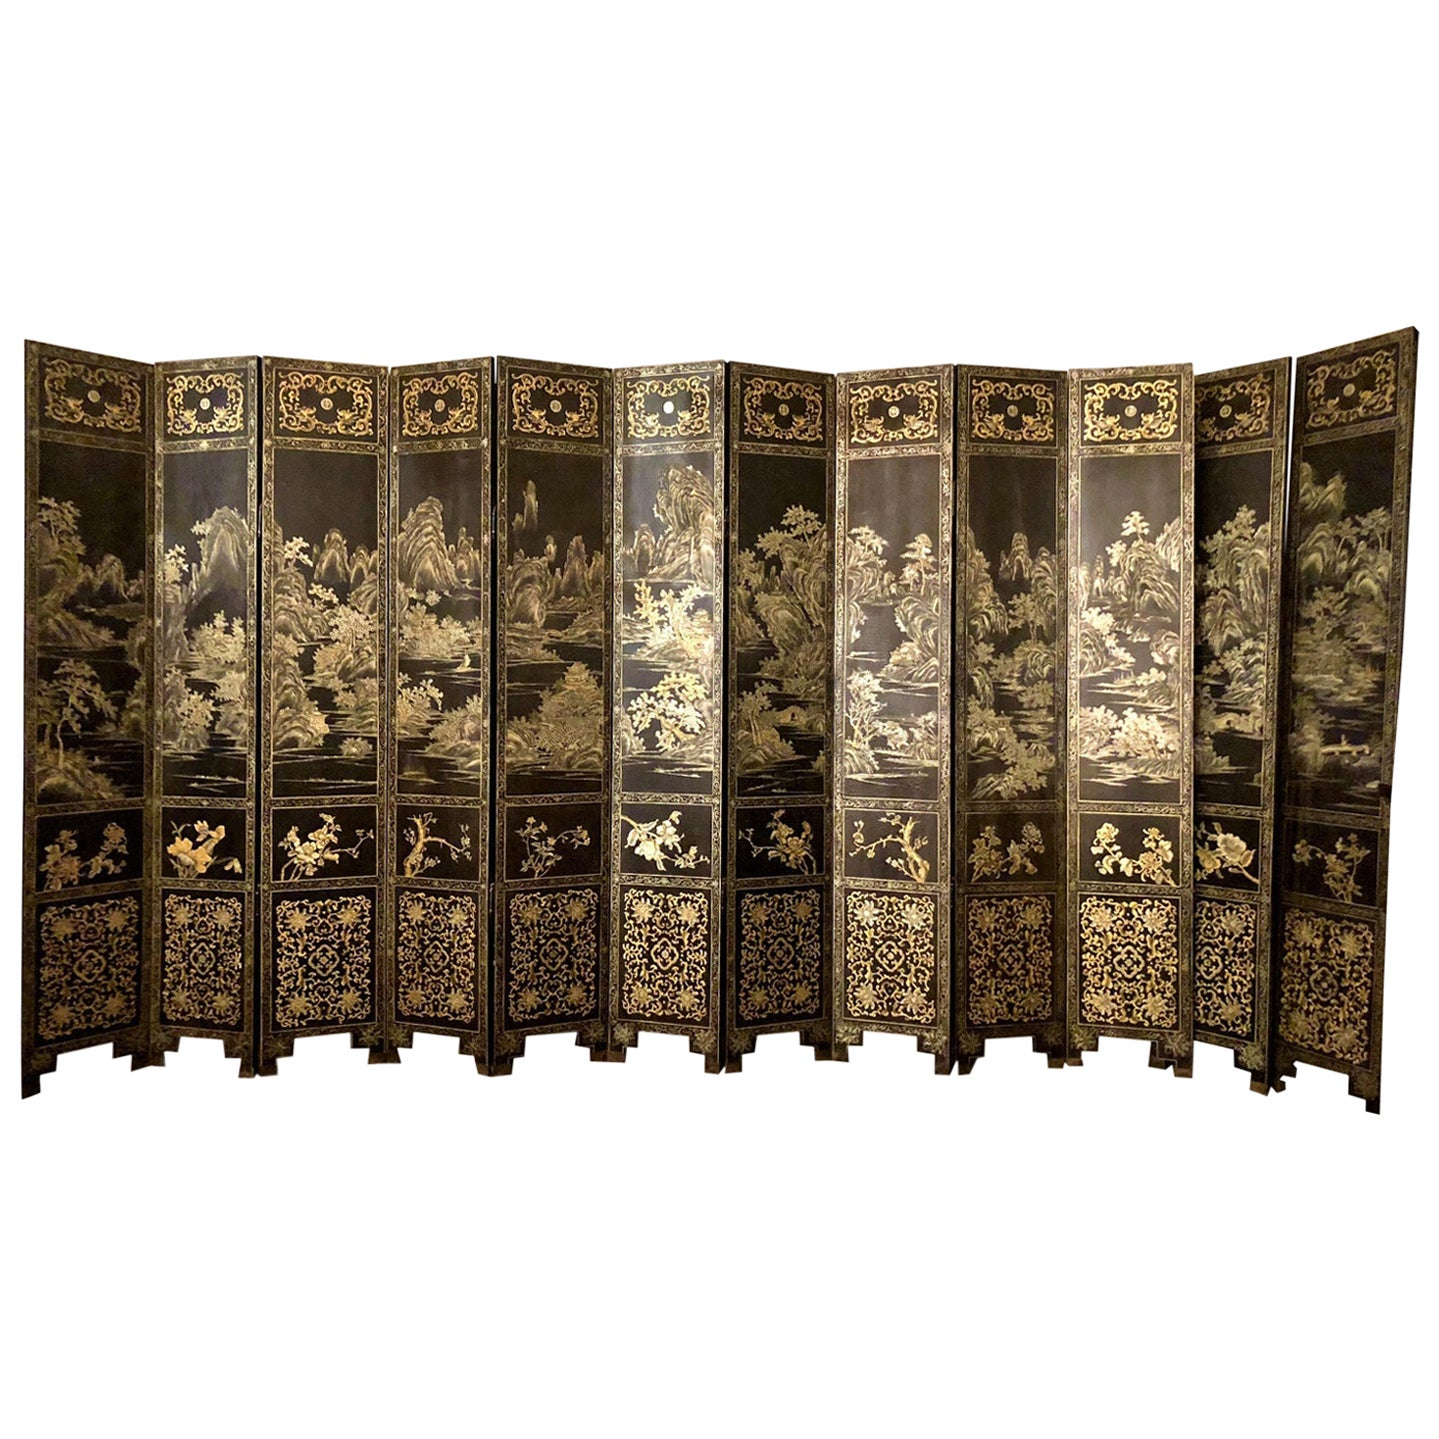 Antique Chinese Lacquered 12 Panel Screen, circa 1890-1910